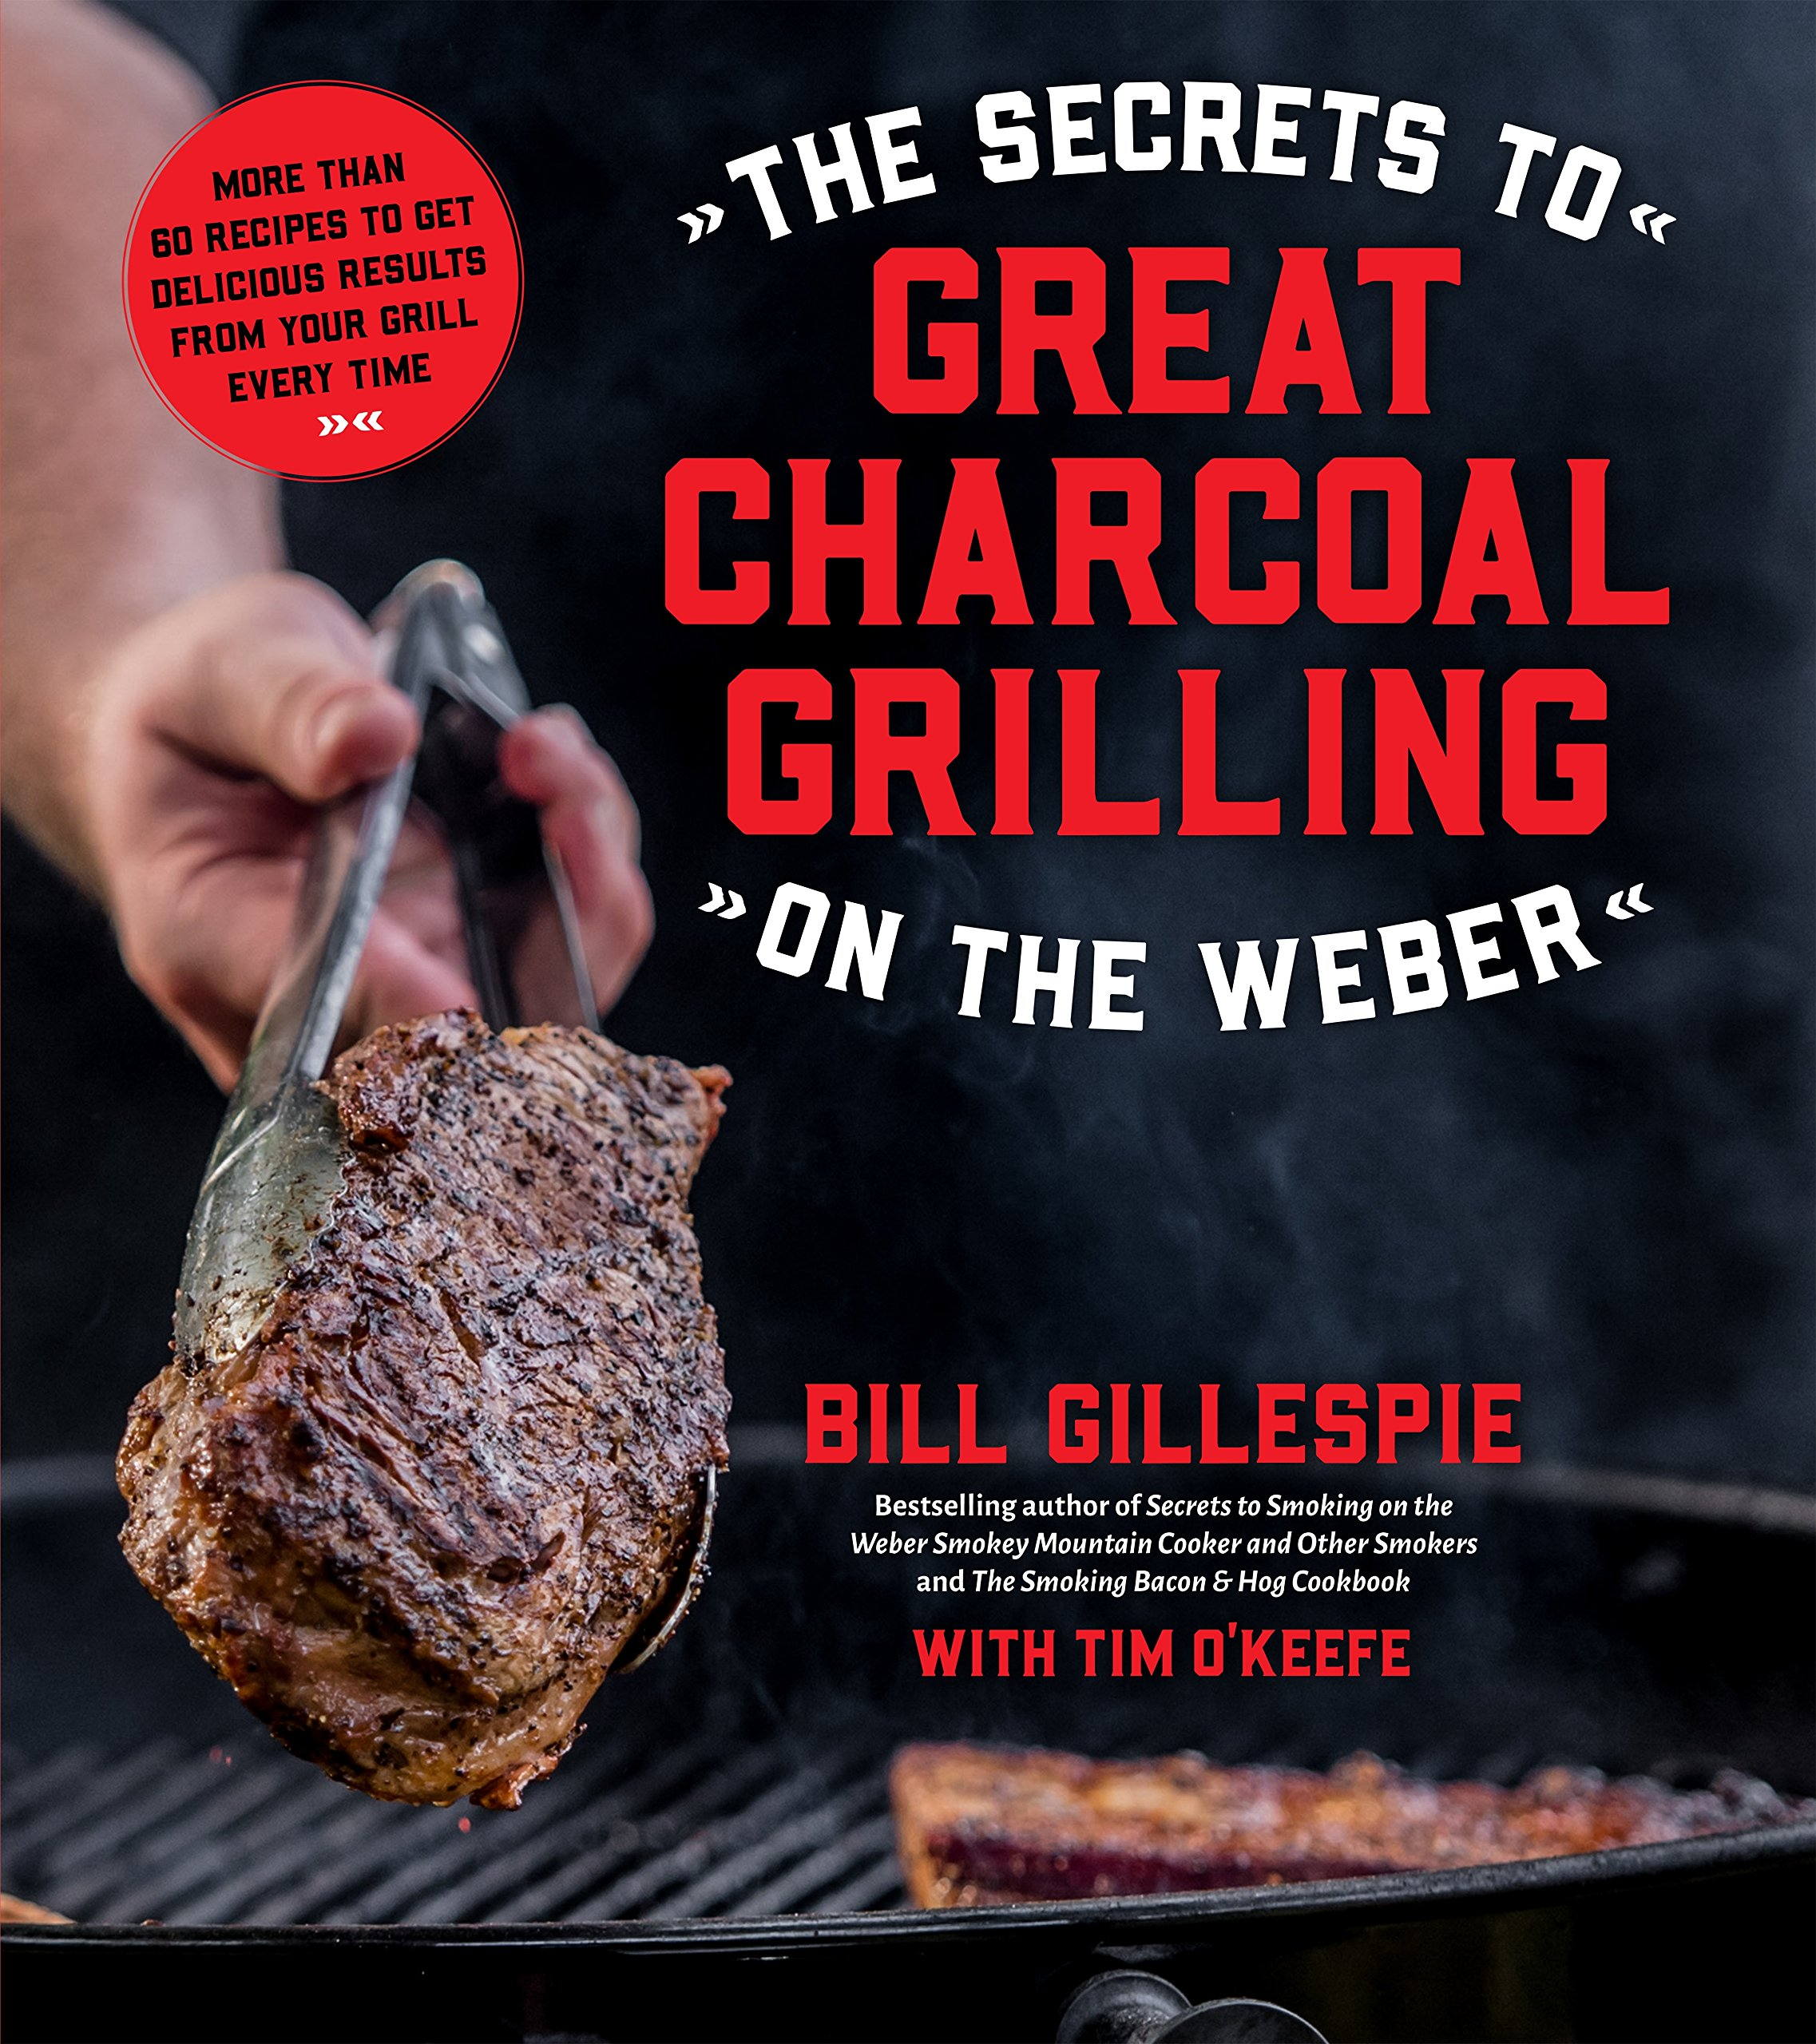 The Secrets To Great Charcoal Grilling On The Weber More Than 60